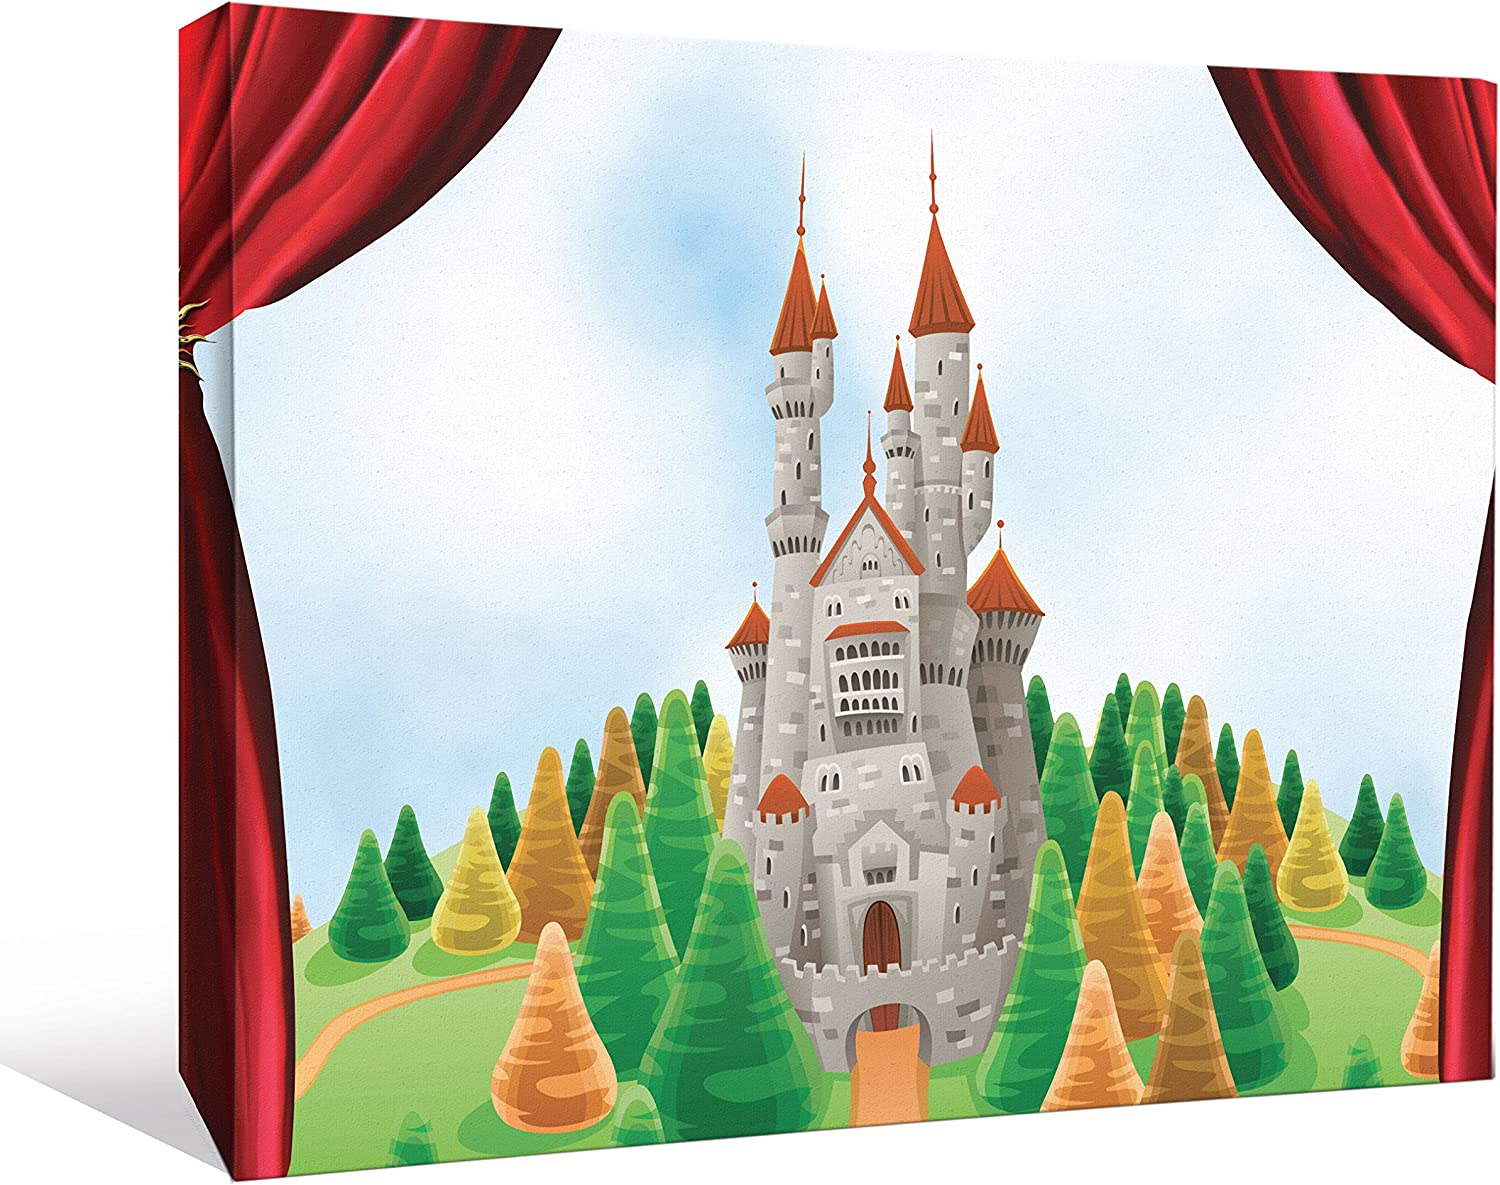 JP London CNV2069 Fantasy Evergreen Forest Fairy Tale Castle Stage Curtain Set Gallery Wall Decor, 1.5' x 2'